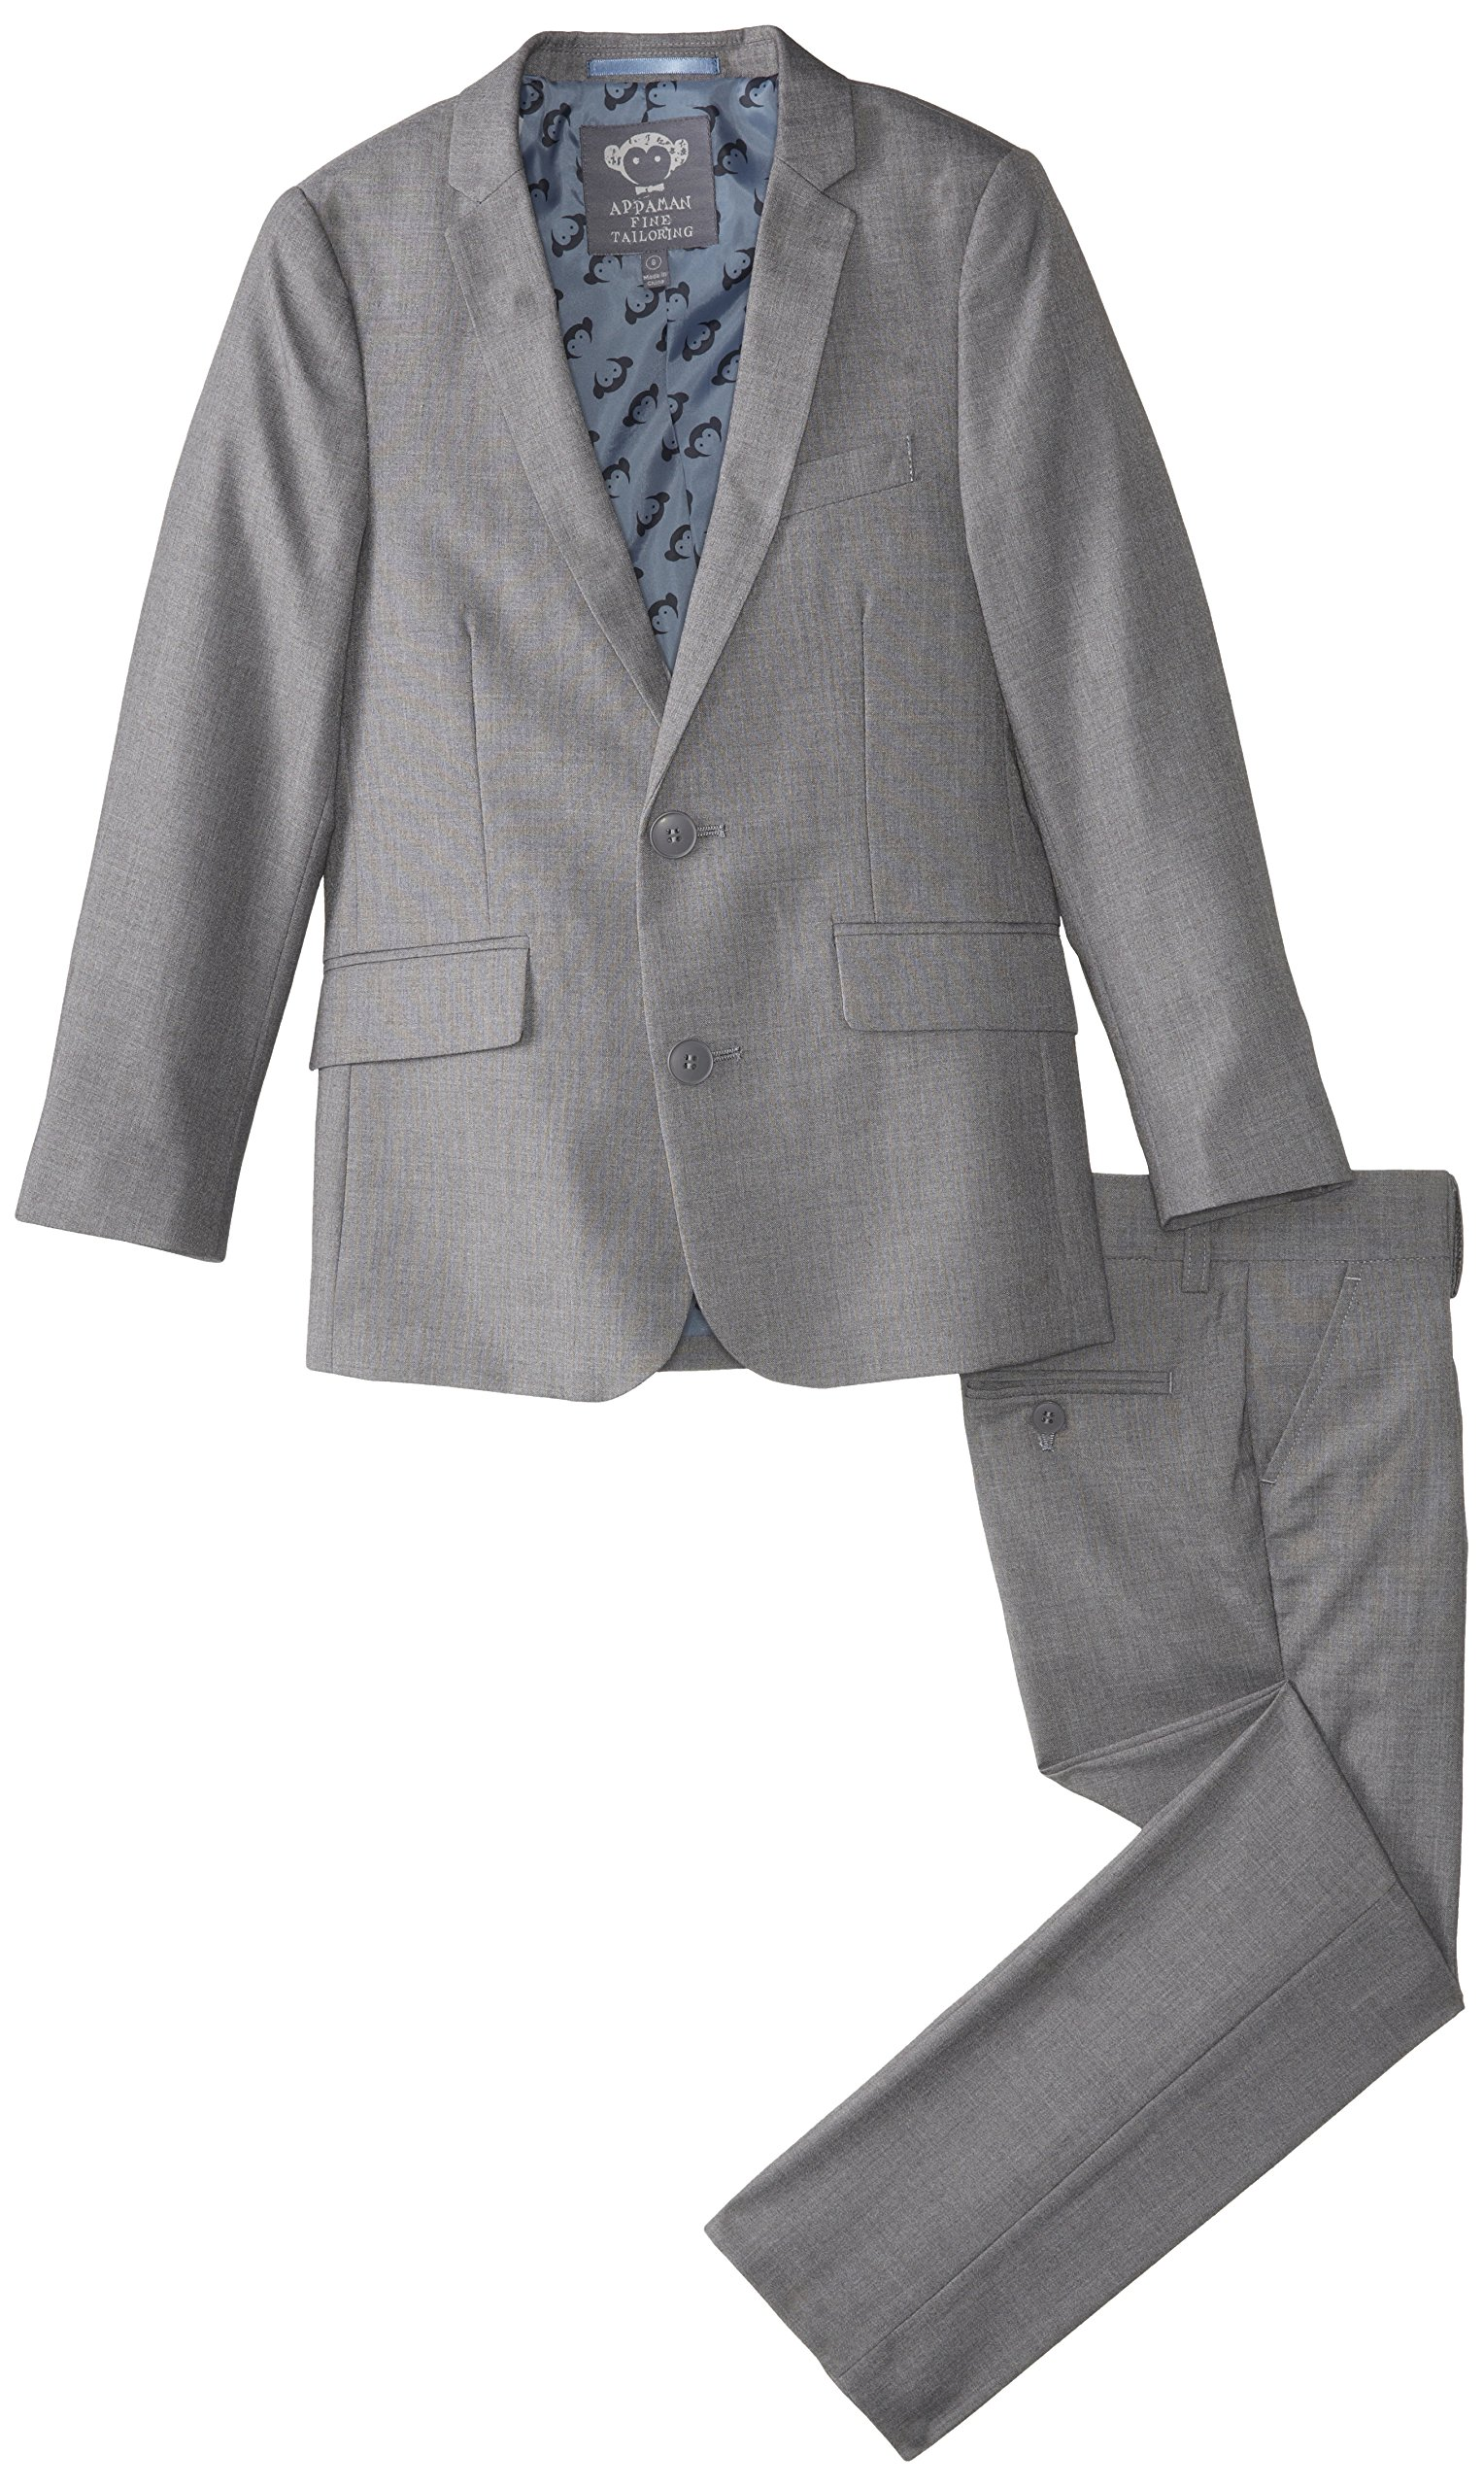 Appaman Big Boys' Two Piece Classic Mod Suit, Mist, 12